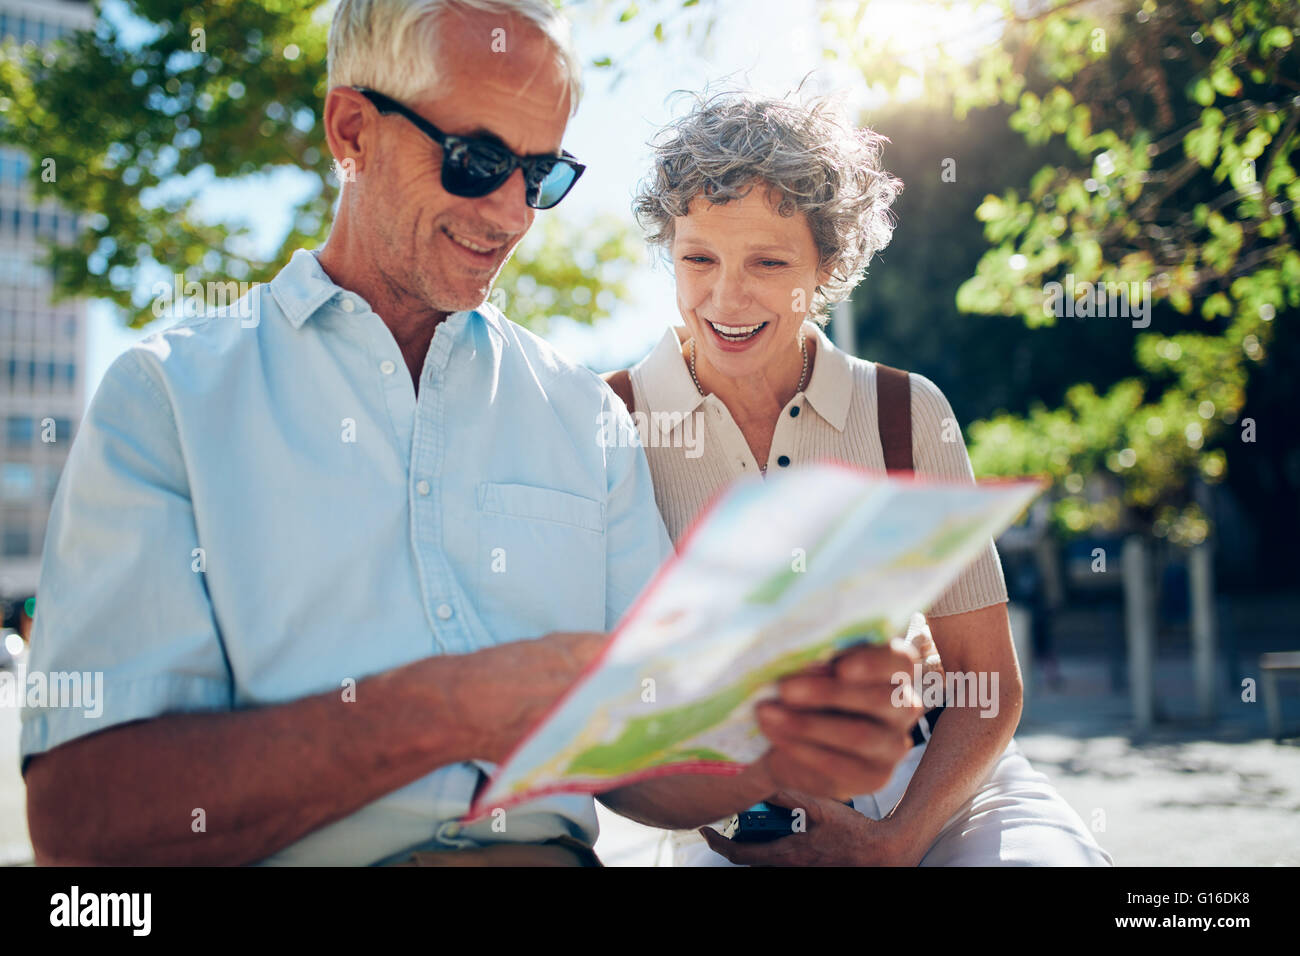 Elderly couple sitting outdoors and using city map. Happy retired couple looking for a destination on a city map. - Stock Image